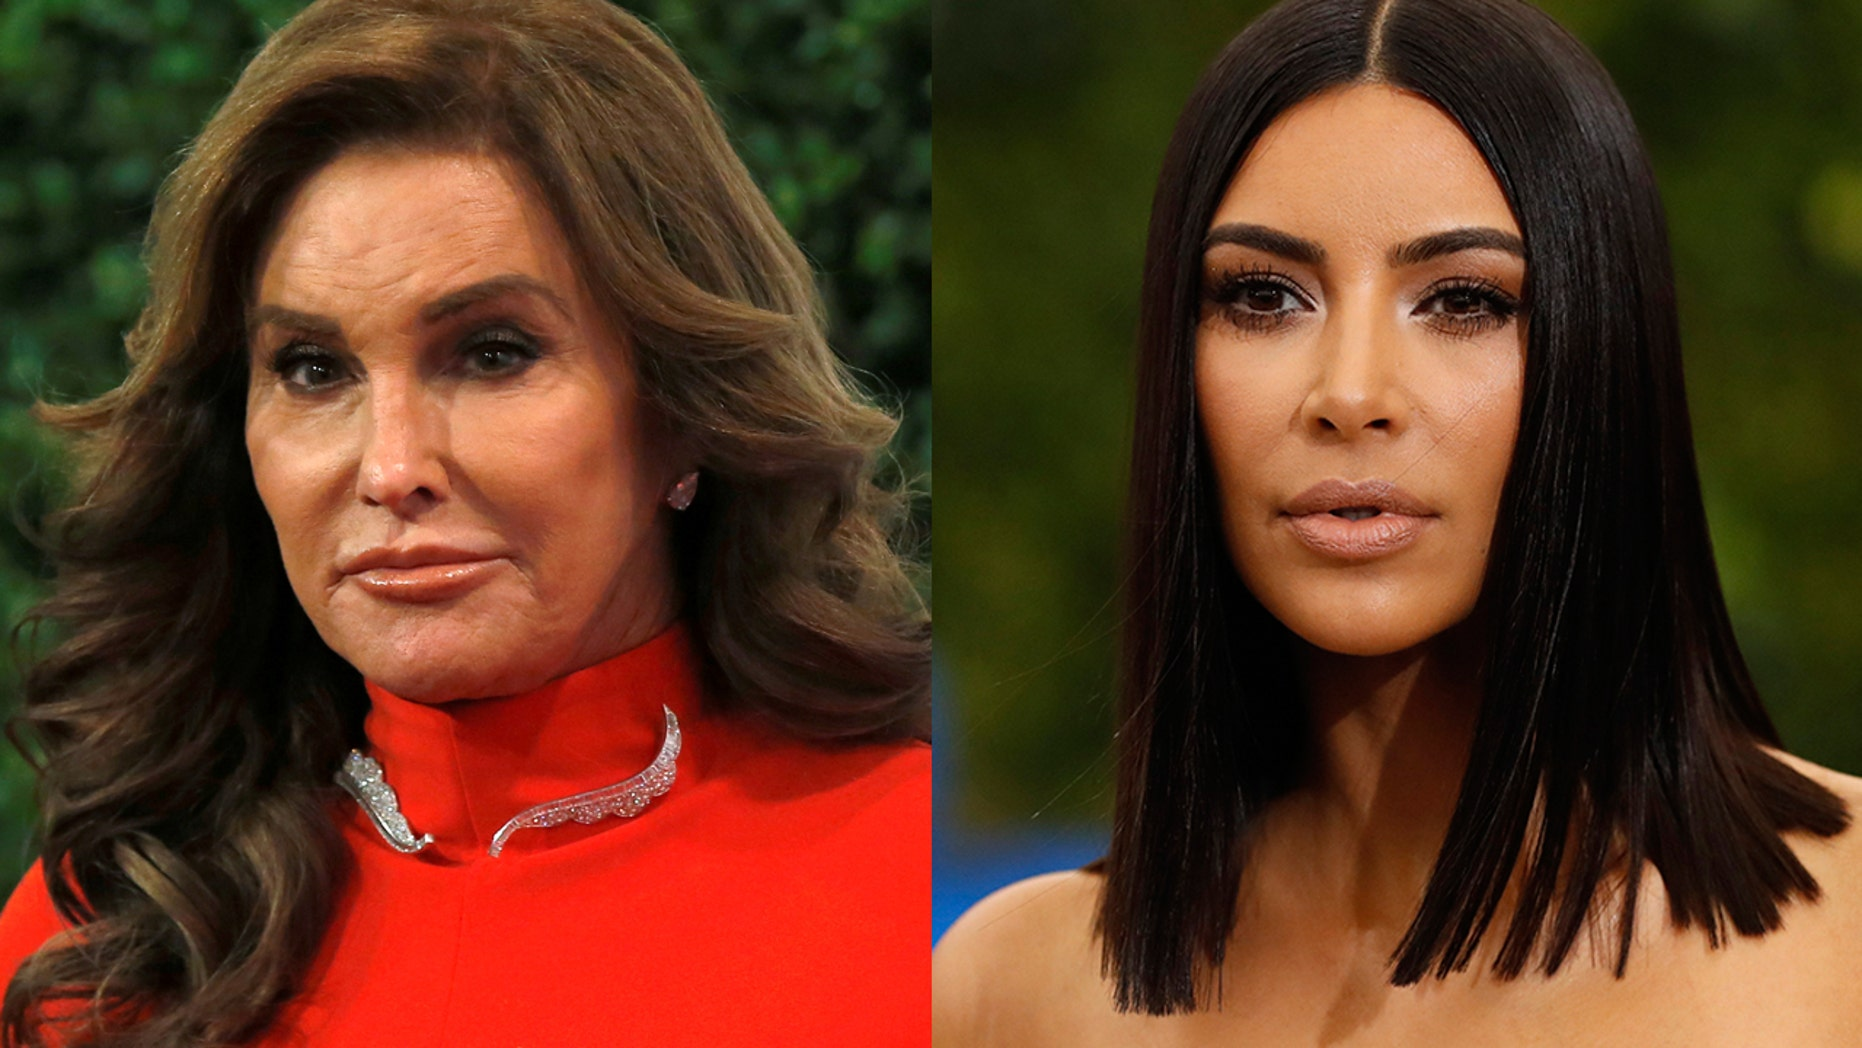 Followers wonder why Kim Kardashian shared an old picture of Caitlyn Jenner prior to her transition on Instagram.